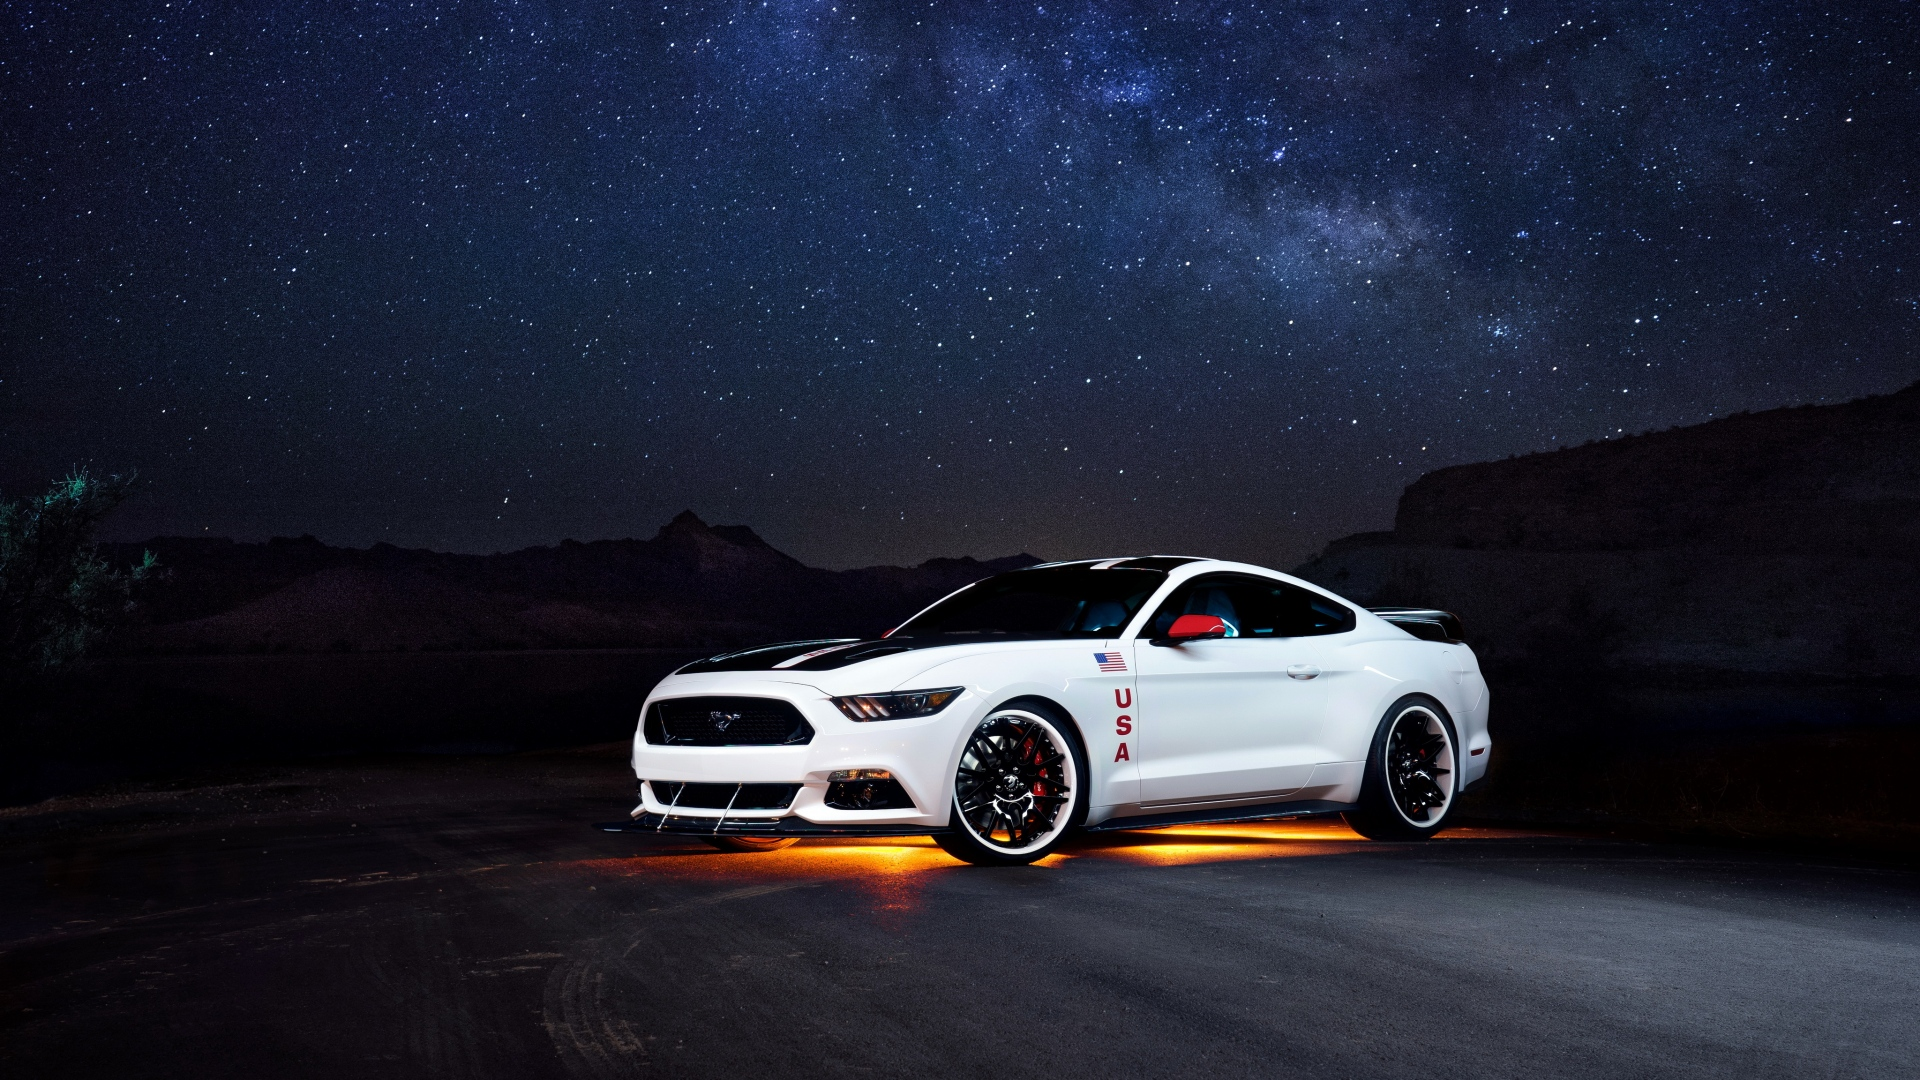 1920x1080 - Ford Mustang GT Wallpapers 14